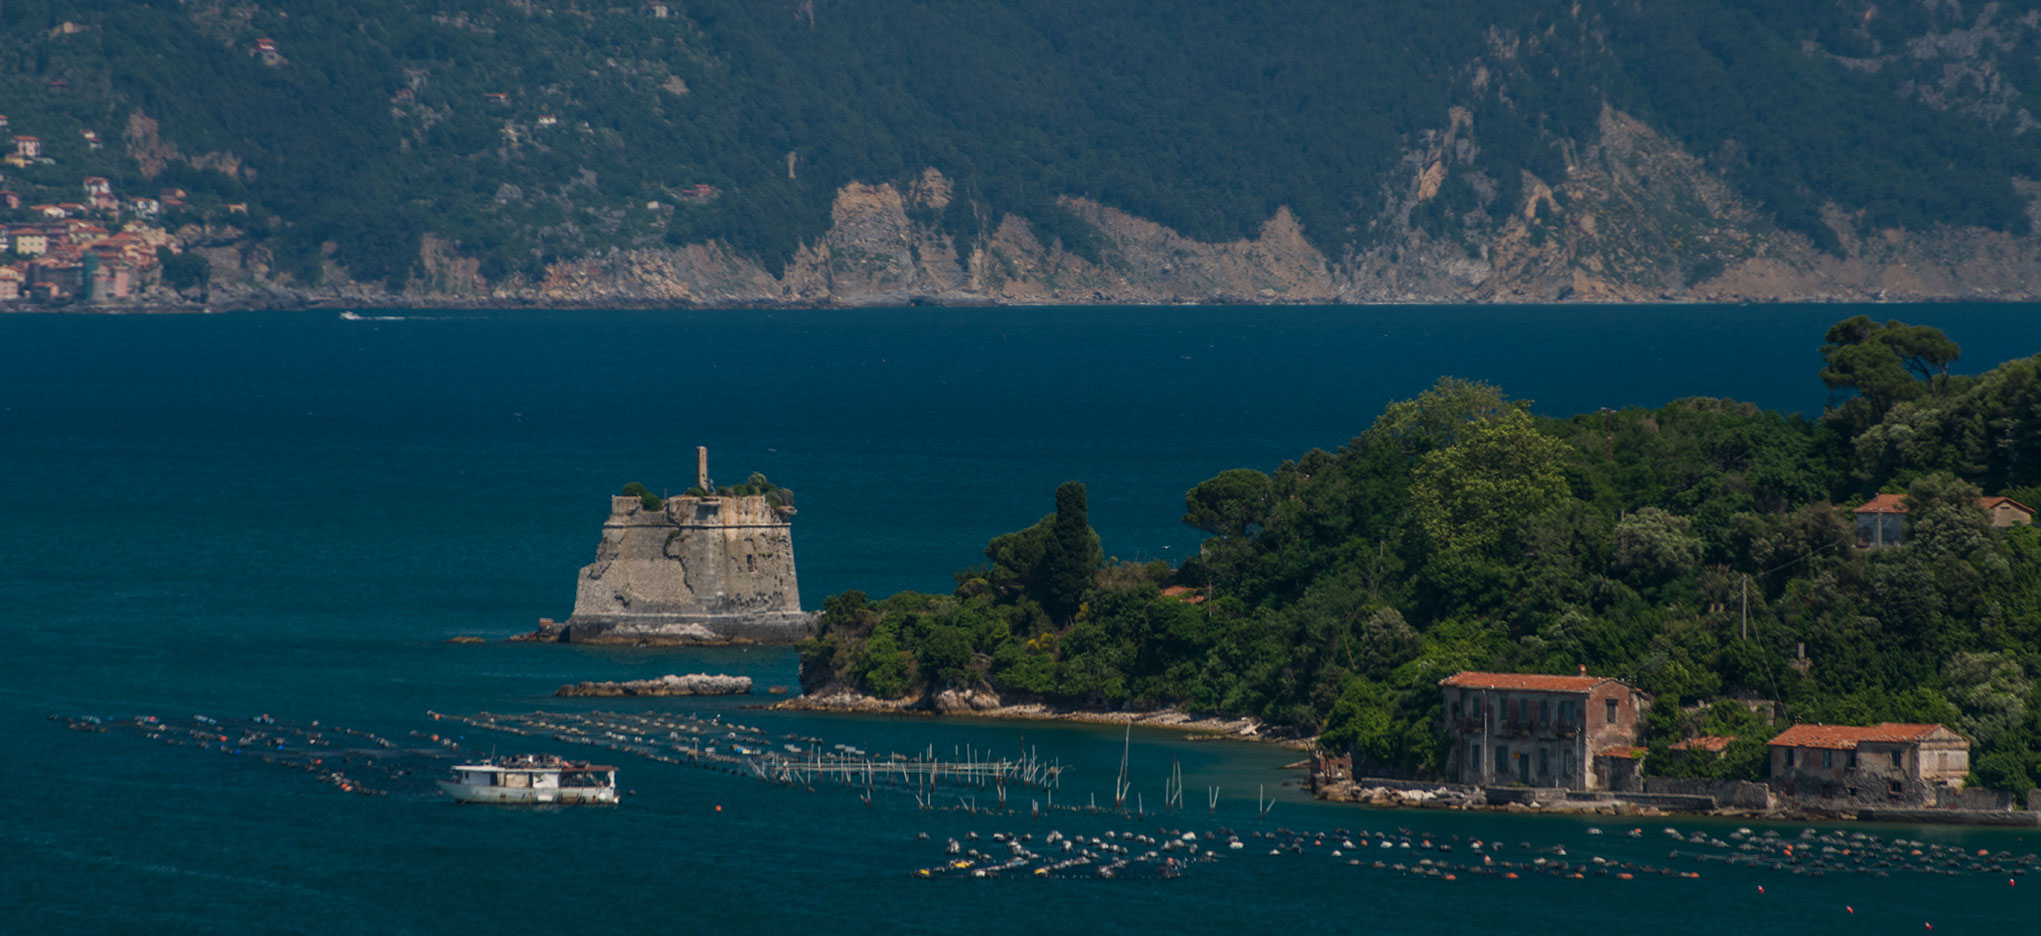 Medieval fortification at Porto Venere. Tellaro is in the background.